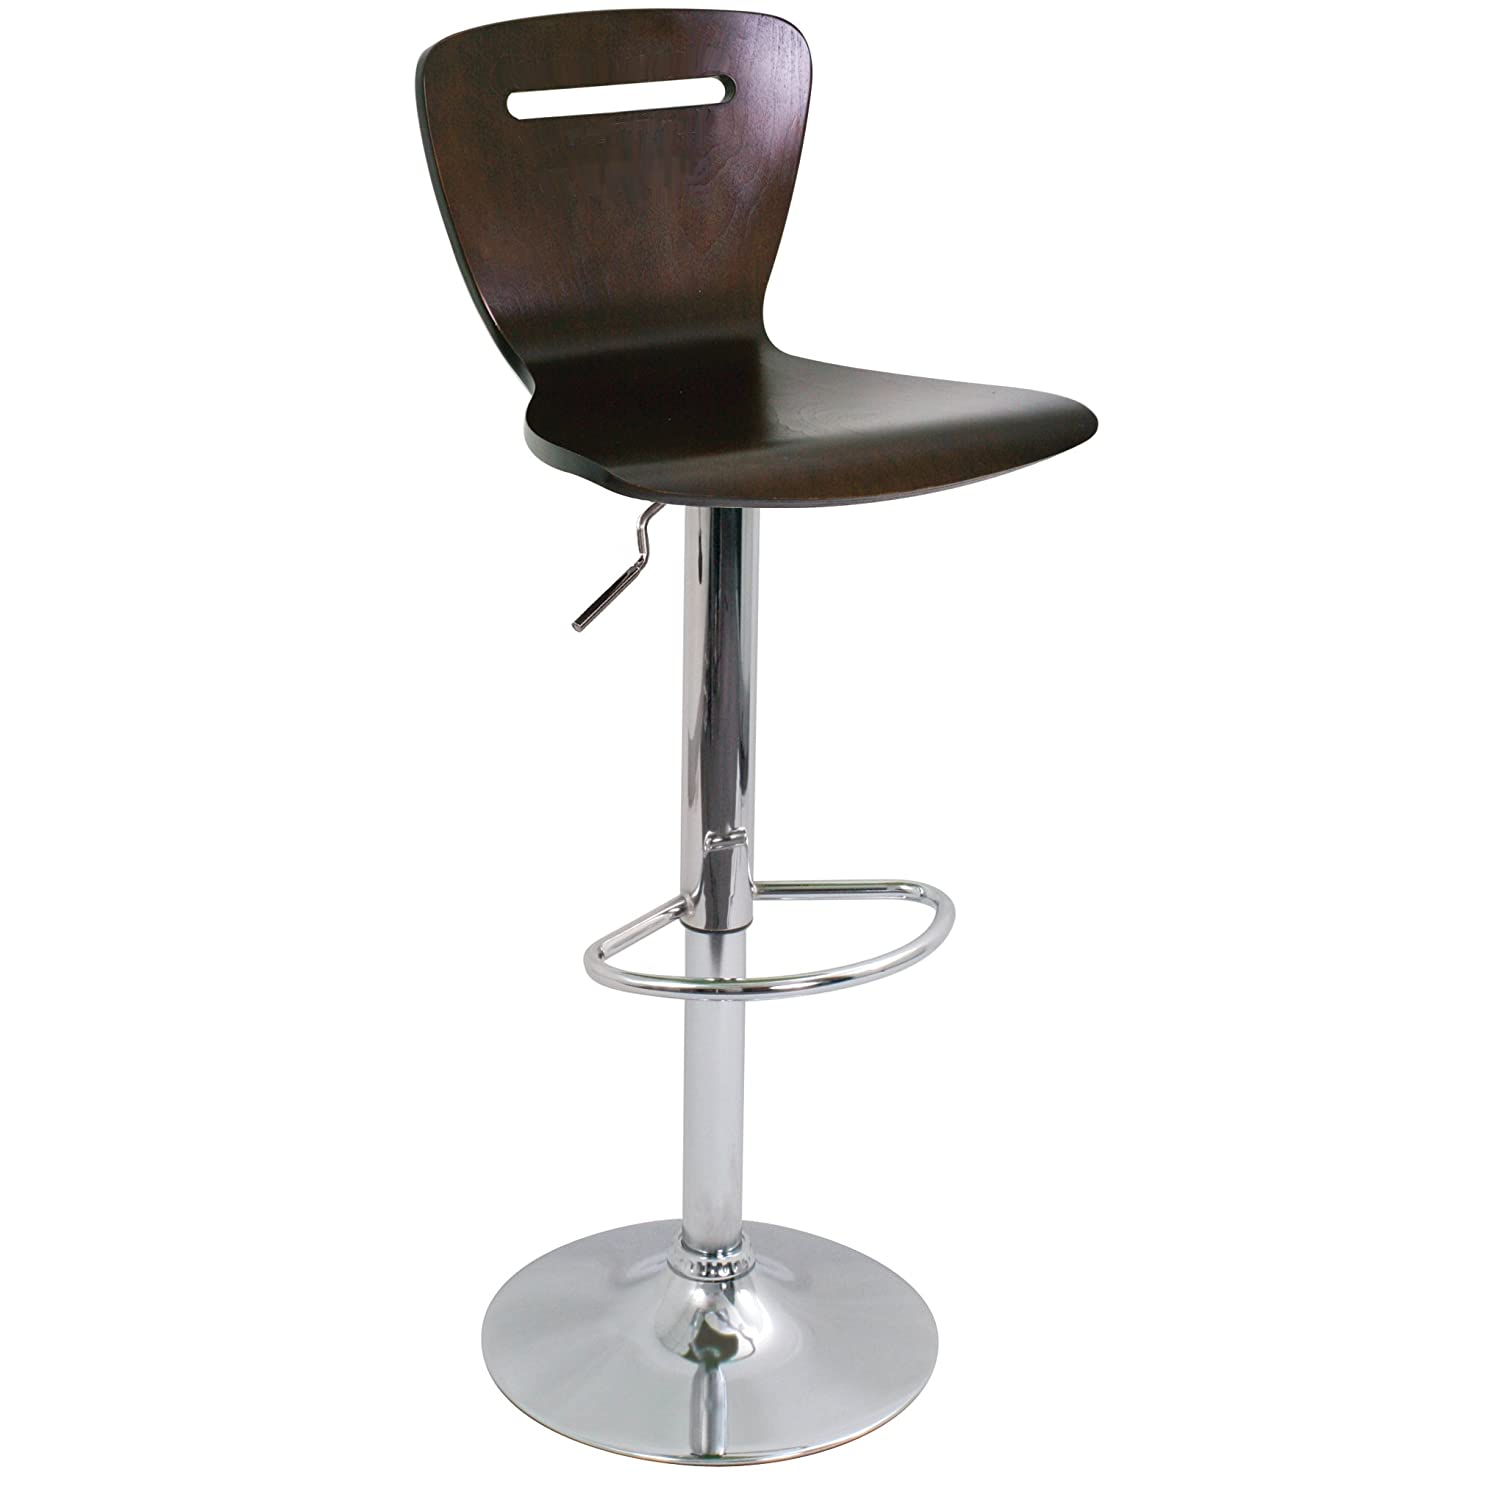 Superb img of Modern Adjustable Wood & ChromeLumiSource H2 Brown Bar Stool with #382E26 color and 1500x1500 pixels